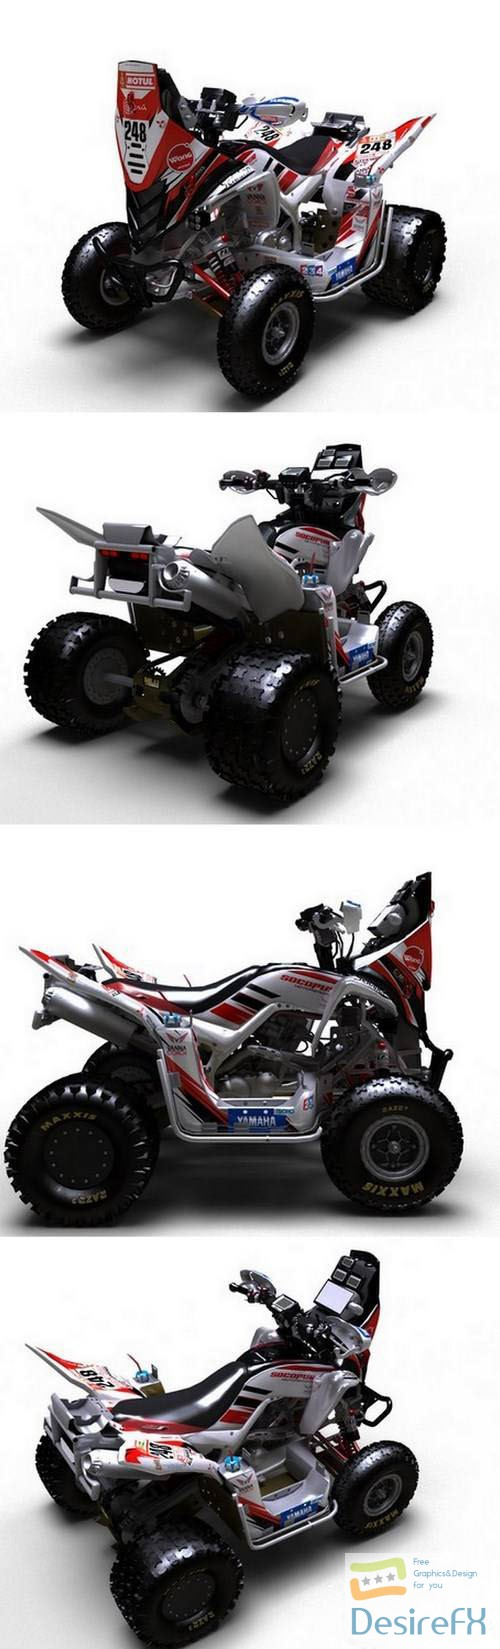 3d-models - Yamaha Raptor QUAD 3D Model